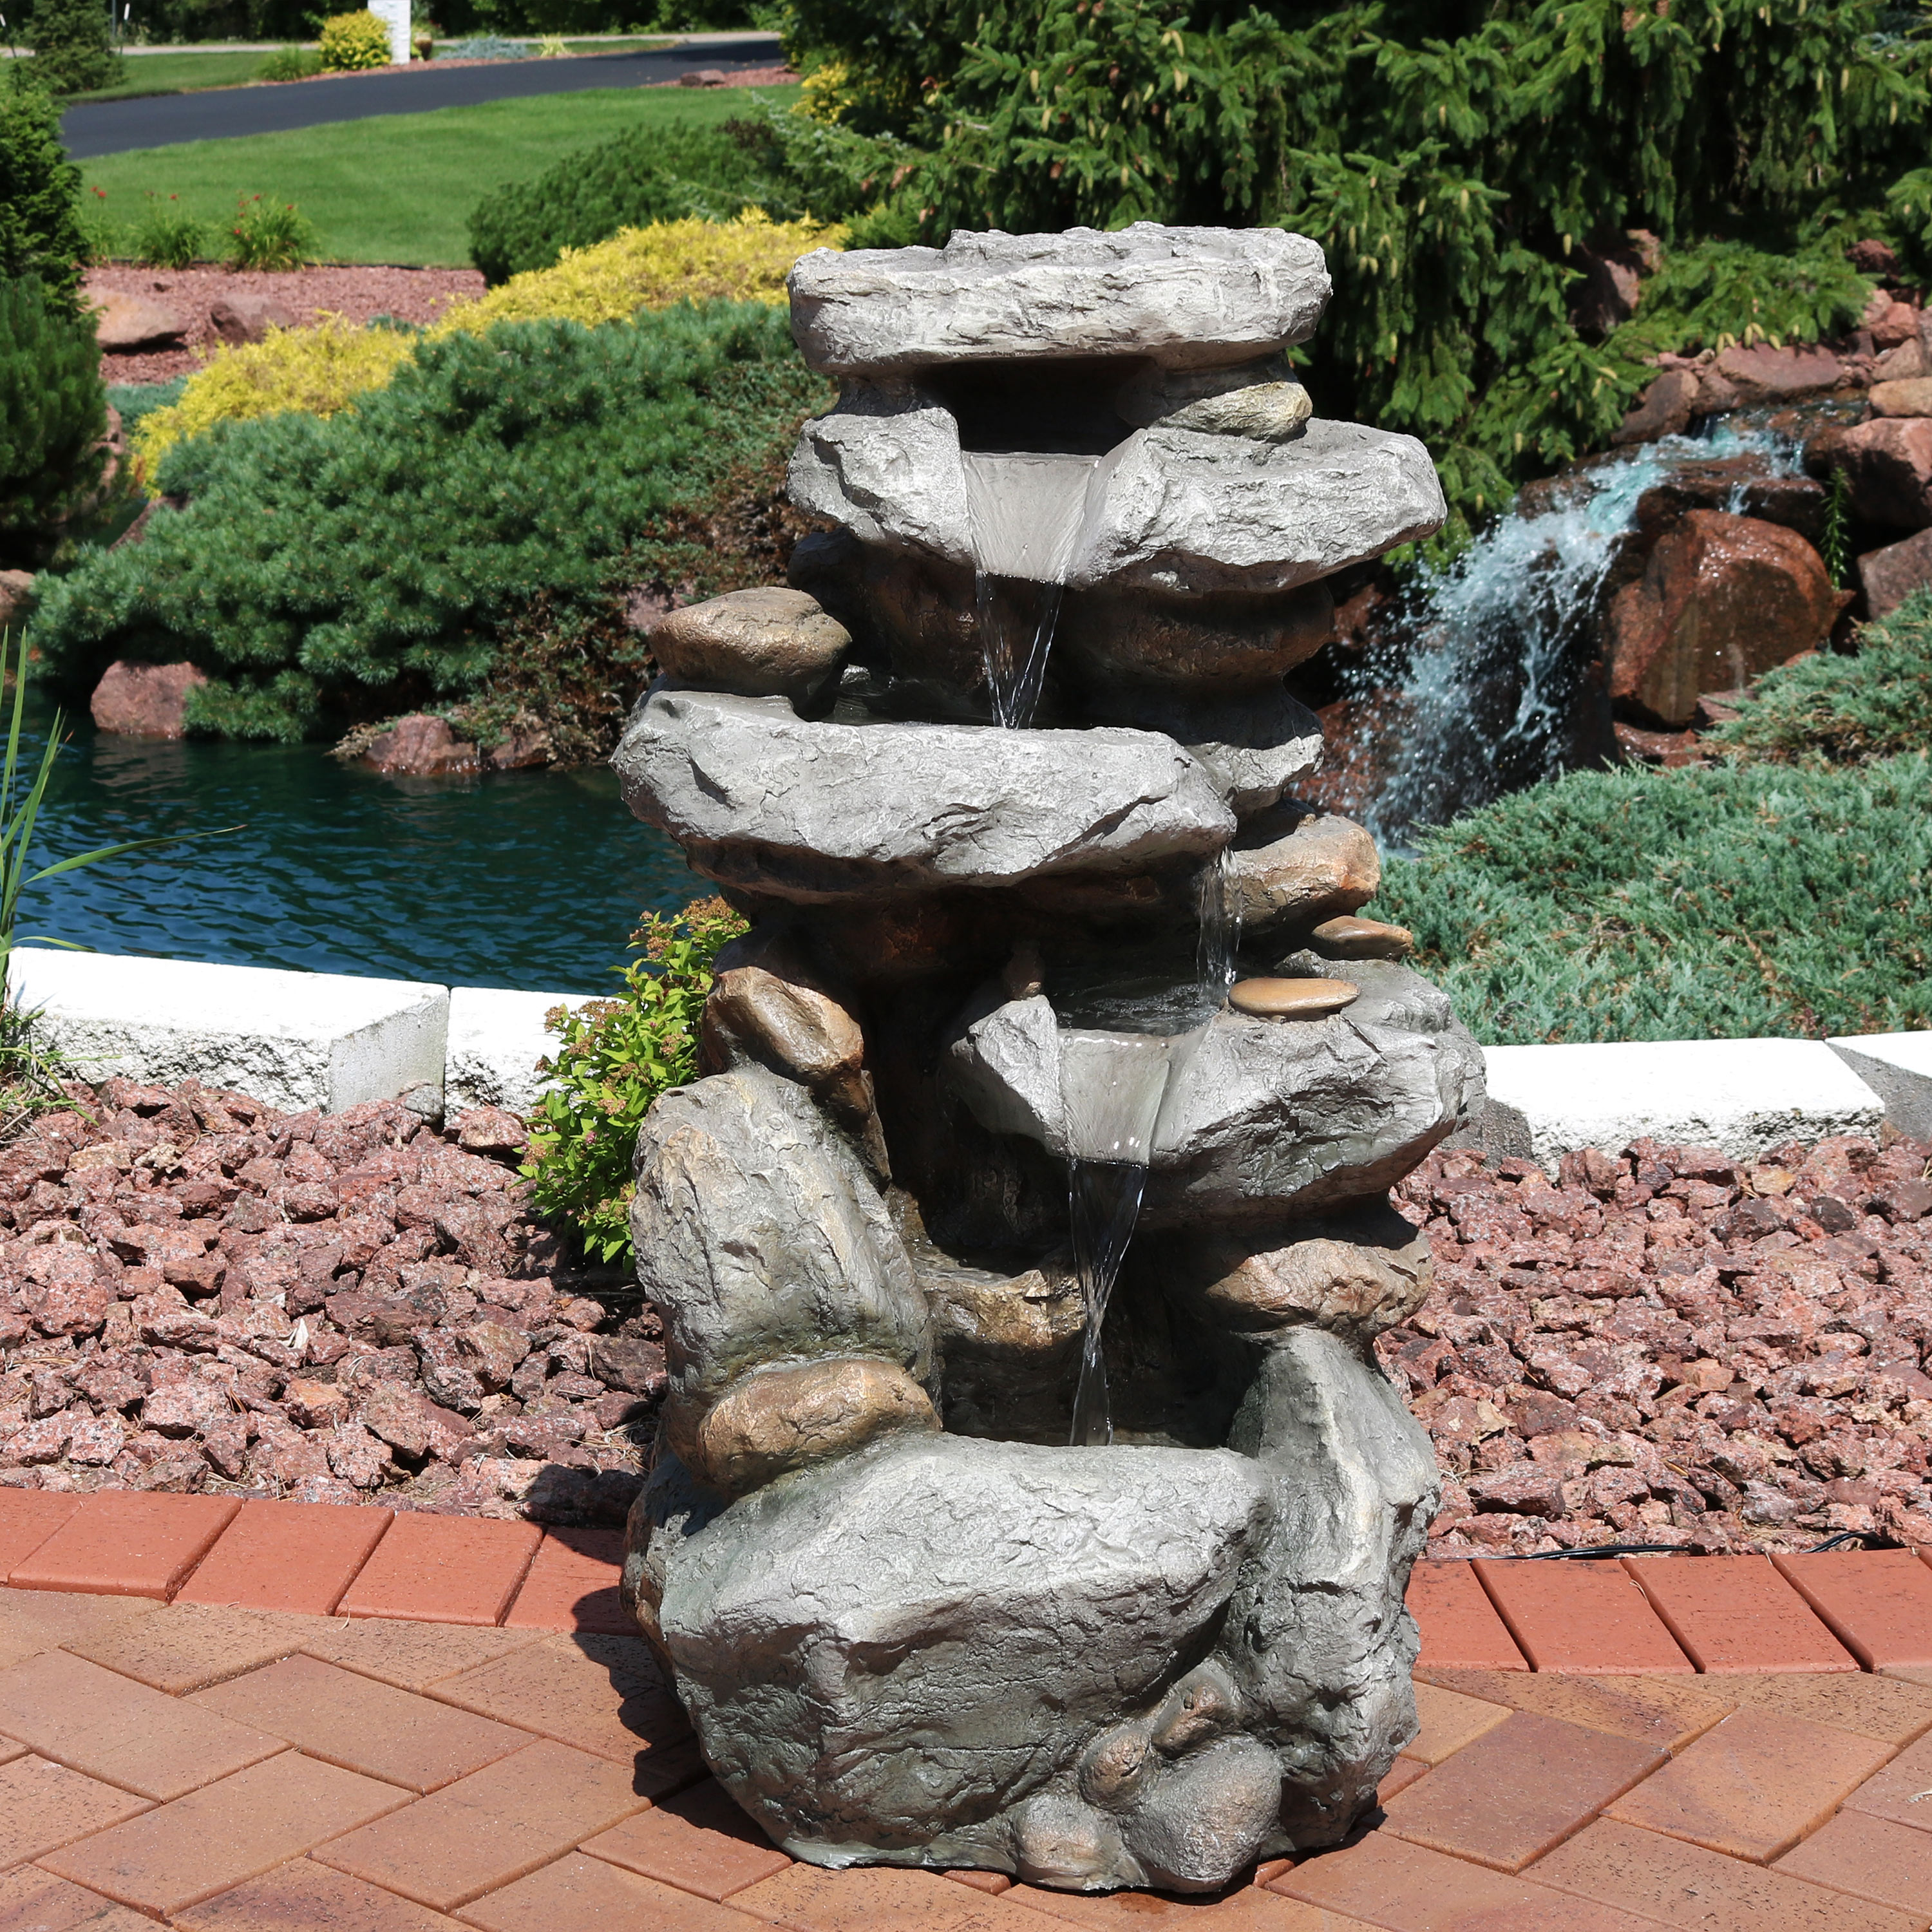 Sunnydaze Rock Falls Outdoor Water Fountain with LED Lights, 34 Inch Tall by Sunnydaze Decor